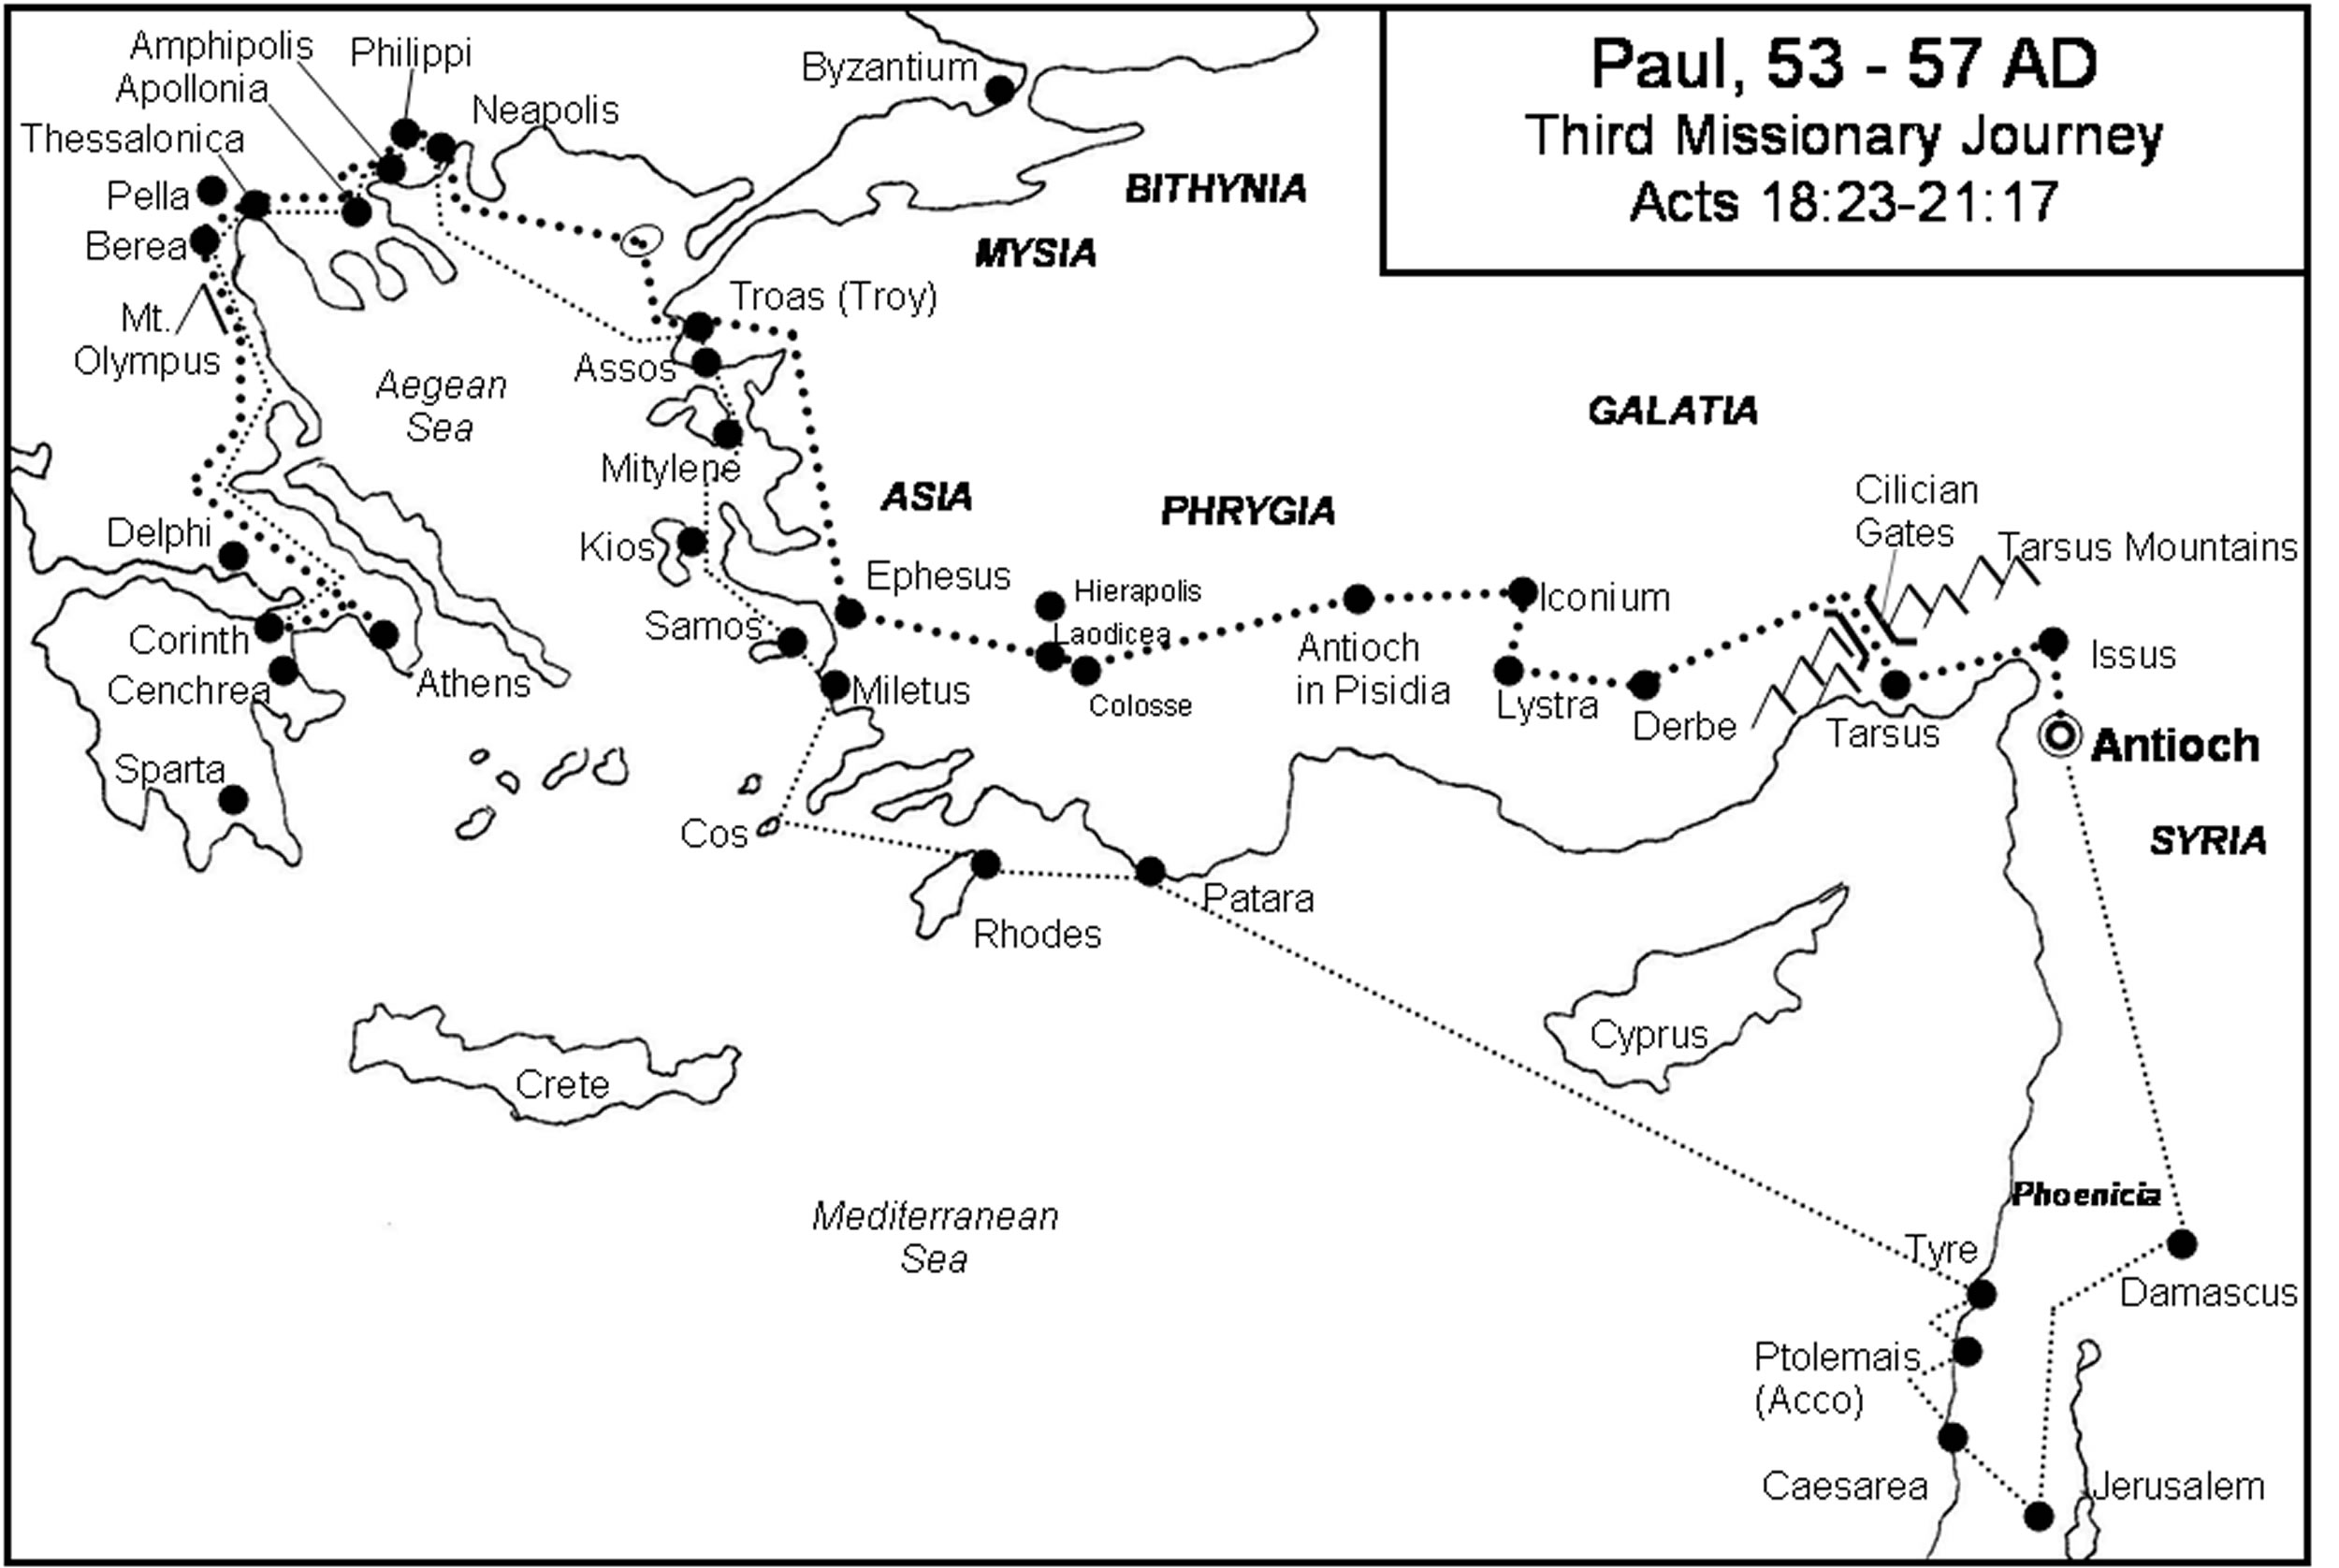 What were the different missionary journeys of Paul